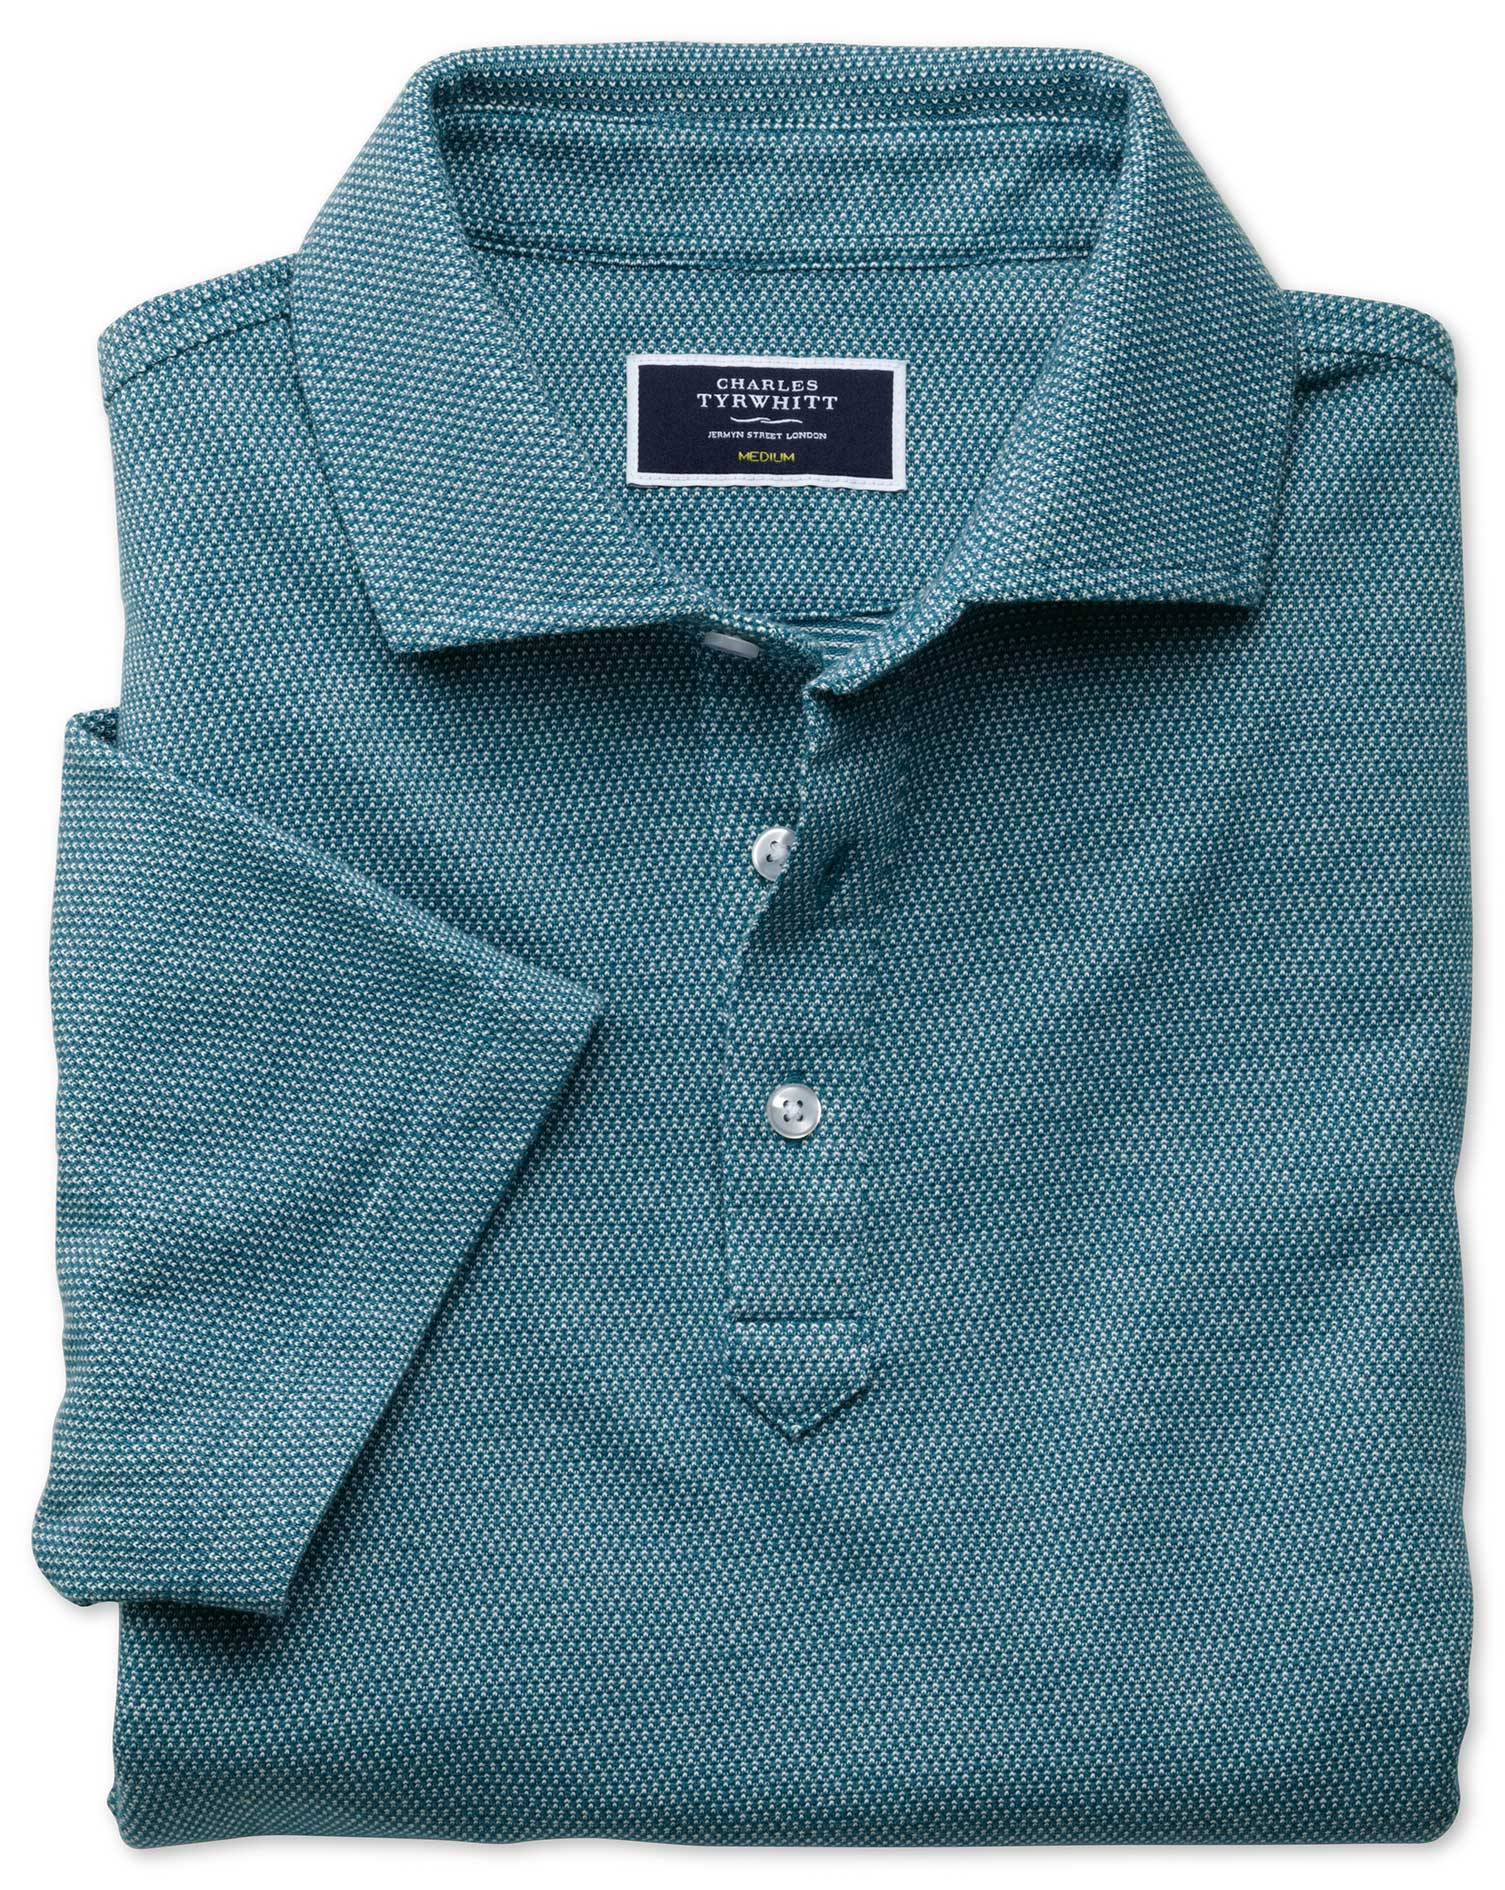 Teal and White Birdseye Cotton Polo Size Small by Charles Tyrwhitt